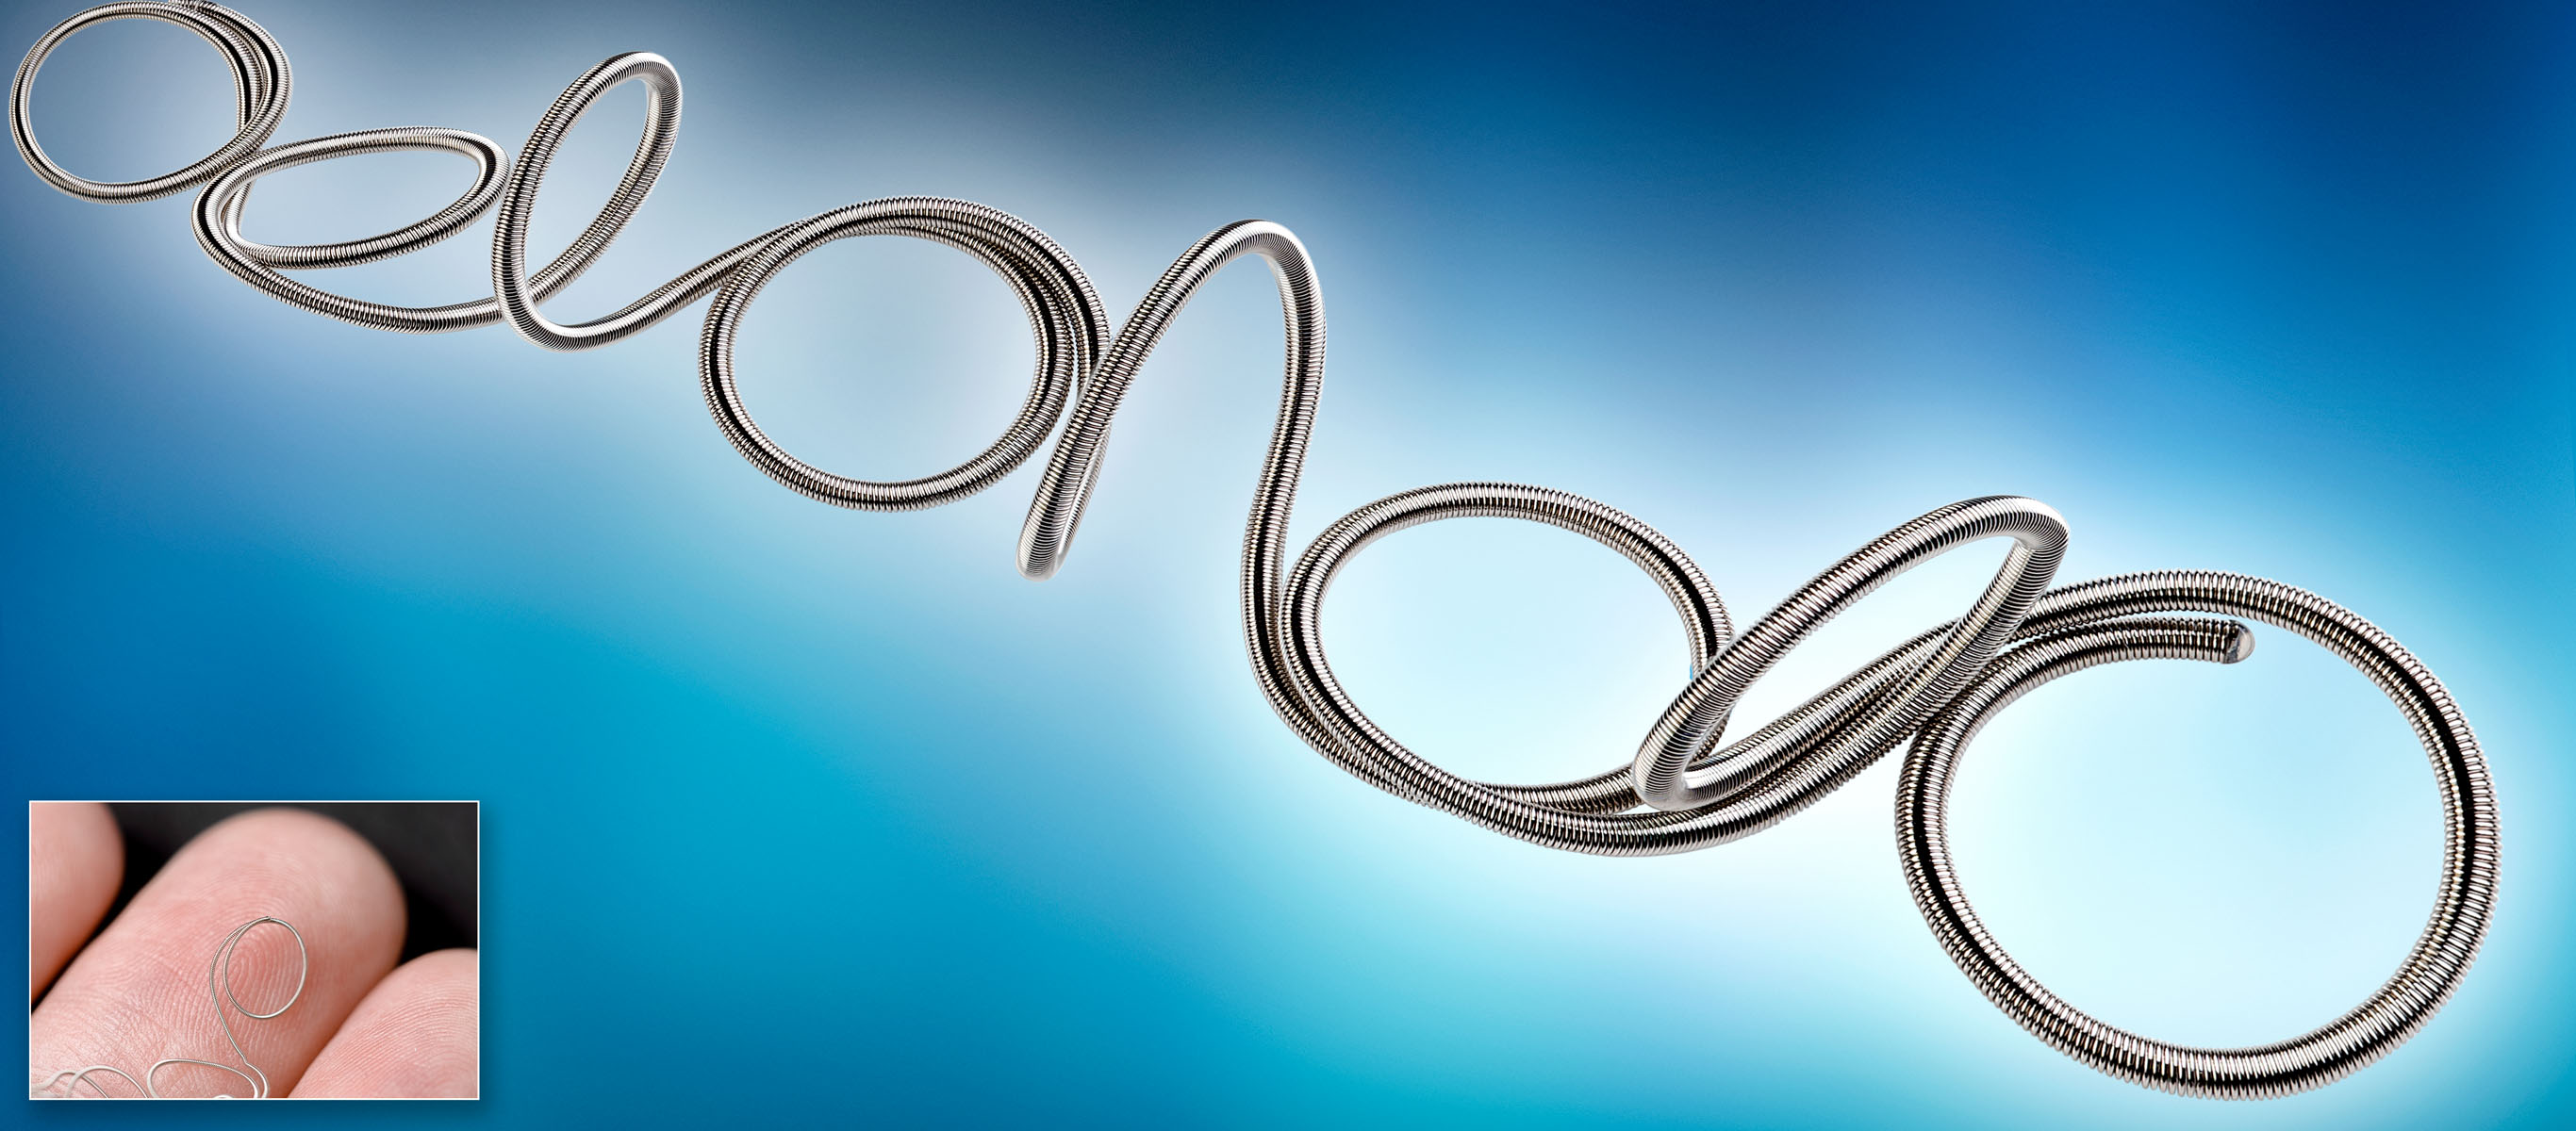 medical device photography example by Richard Quindry - medical device photographer